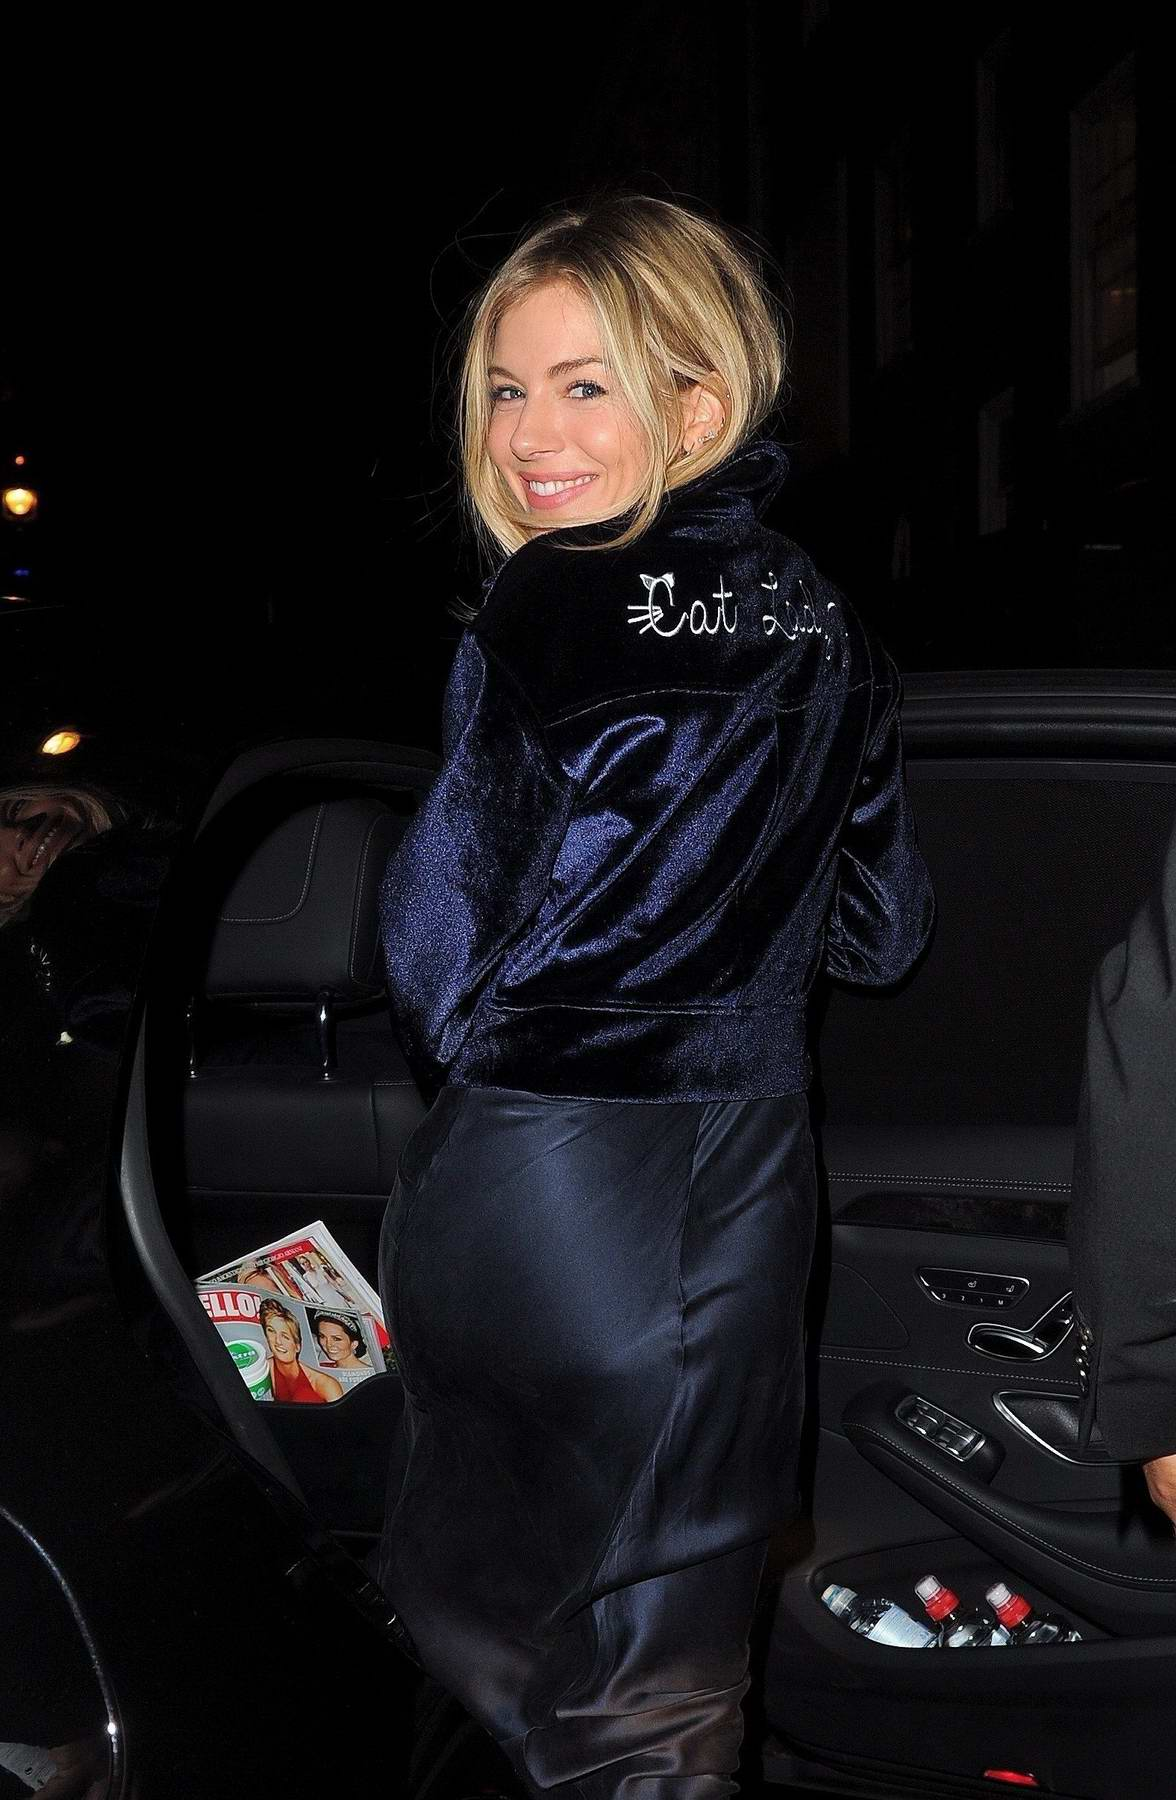 Sienna Miller is seen in a cat lady jacket while leaving the Apollo Theatre in London